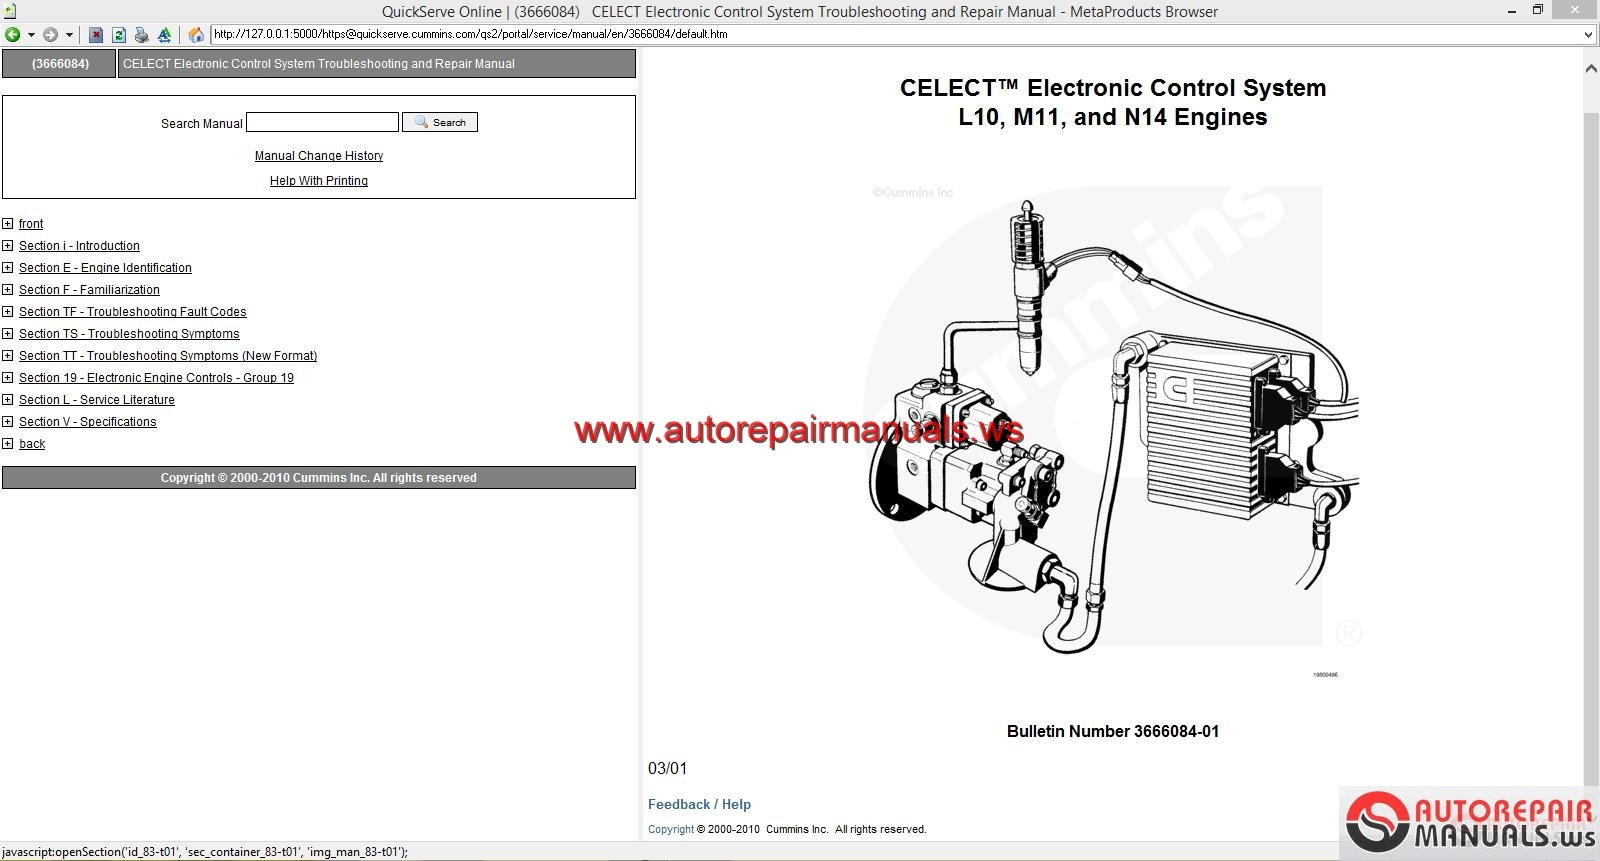 Cummins Celect Electronic Control System L10 M11 And N14